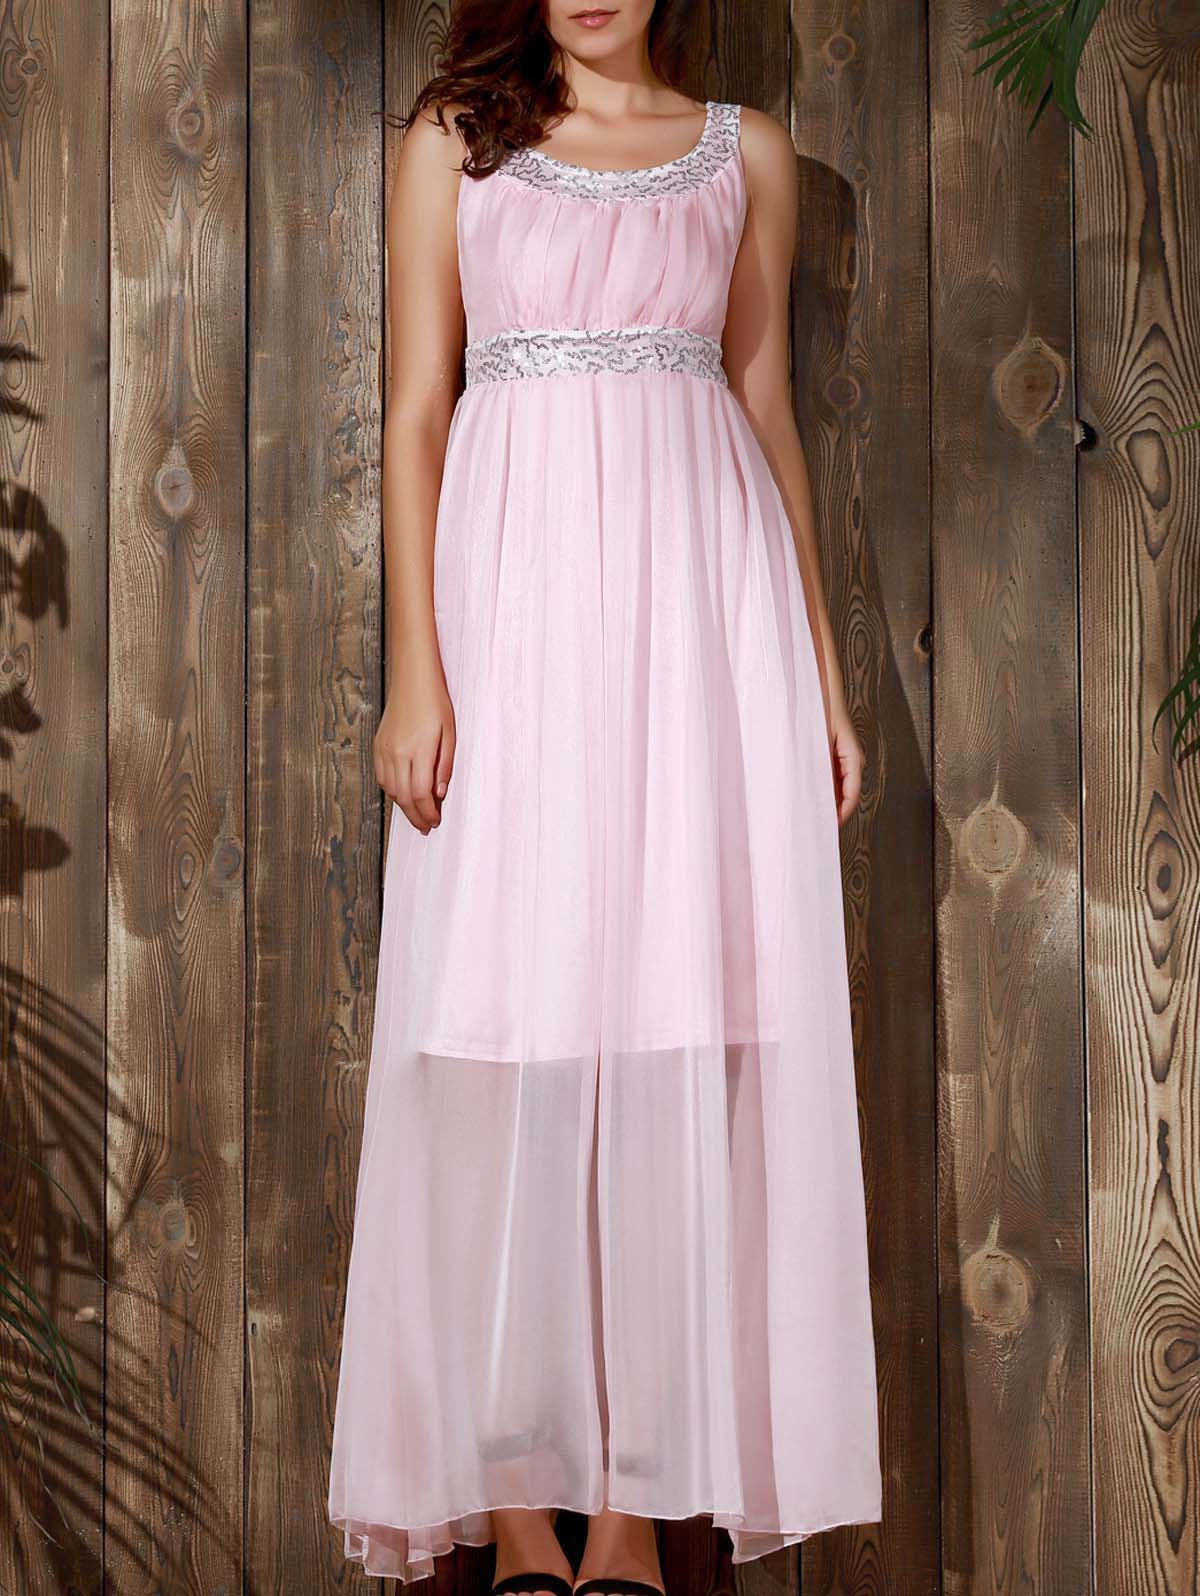 Stylish U-Neck Sleeveless Spliced Sequined Women's Dress - PINK S